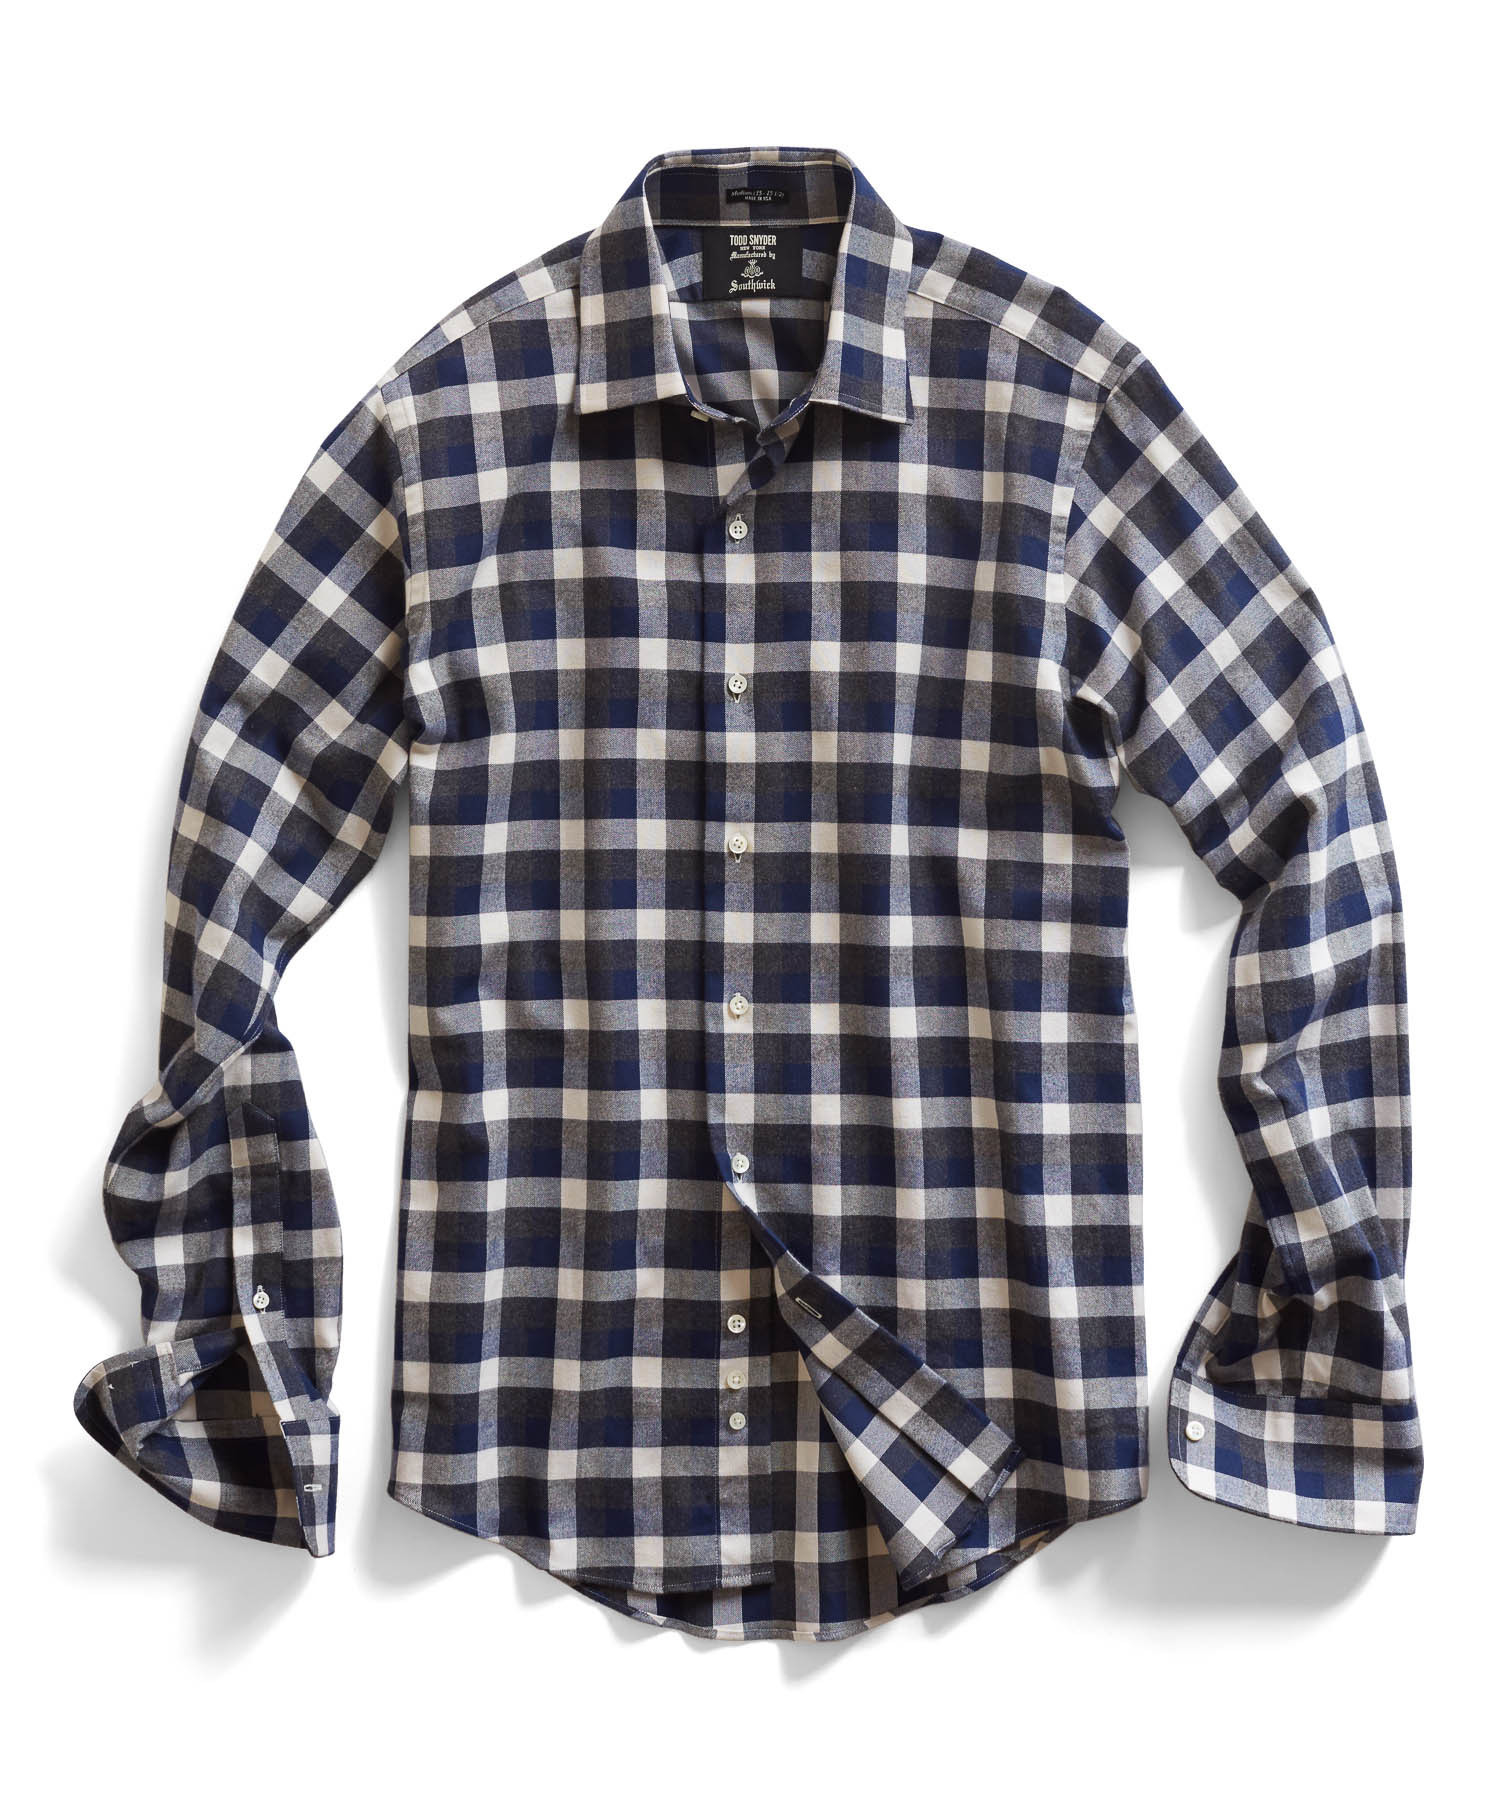 Todd snyder dress shirt in grey plaid in gray for men for Grey plaid shirt womens